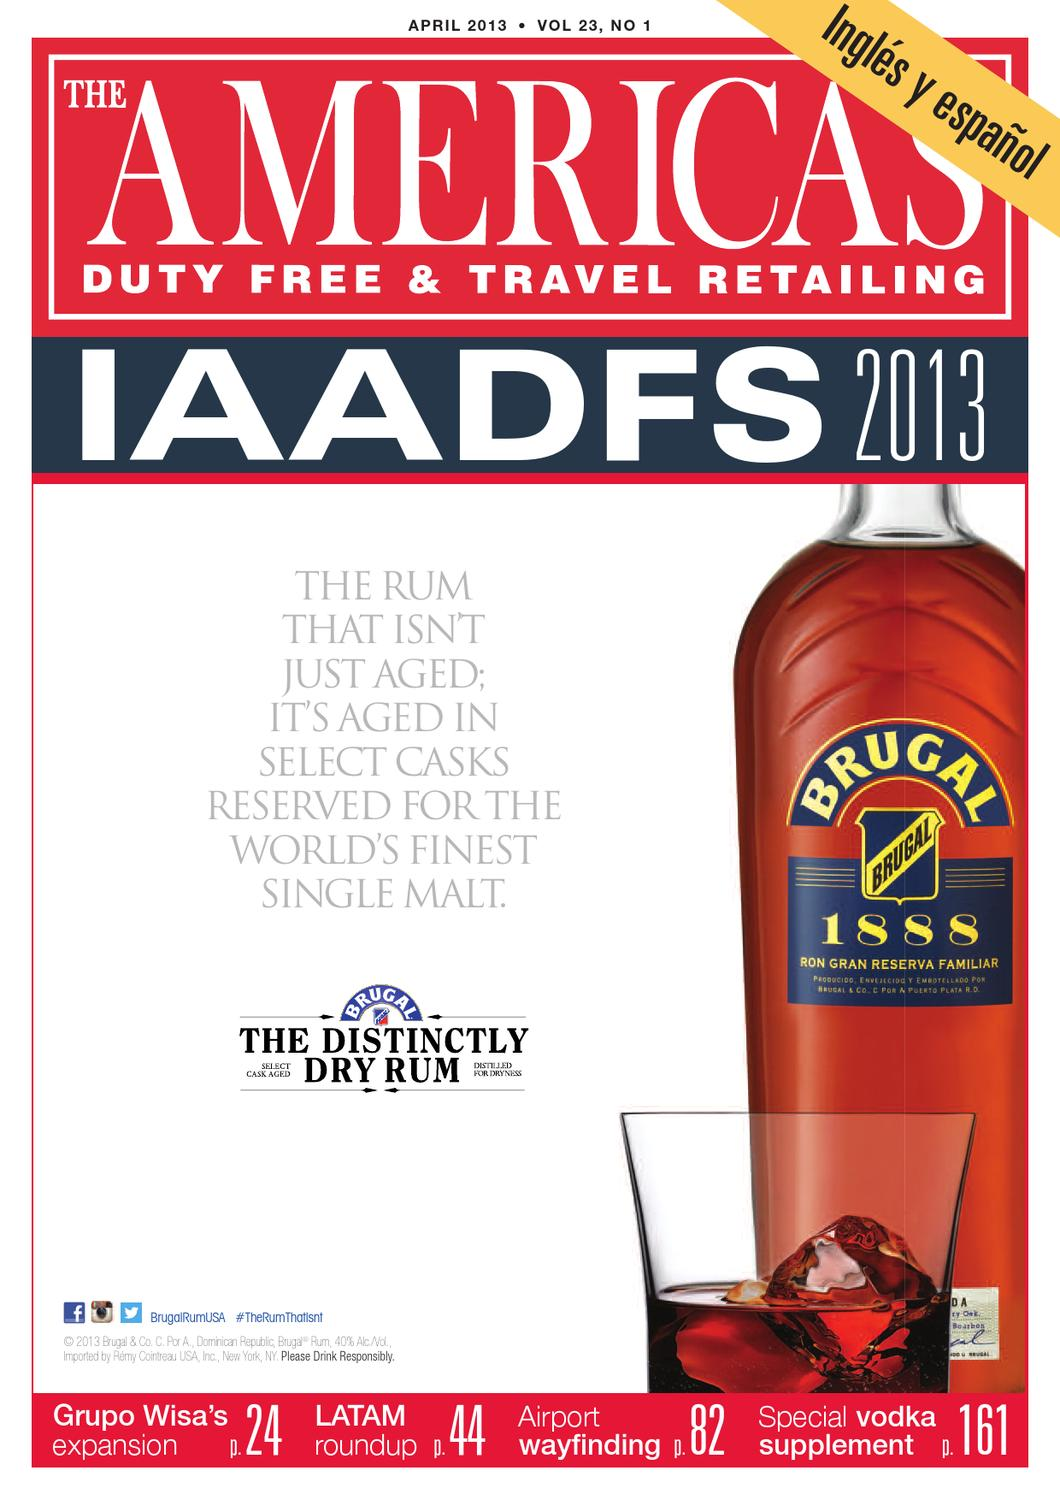 Americas Duty Free Travel Retailing By Global Marketing Company Ltd Issuu